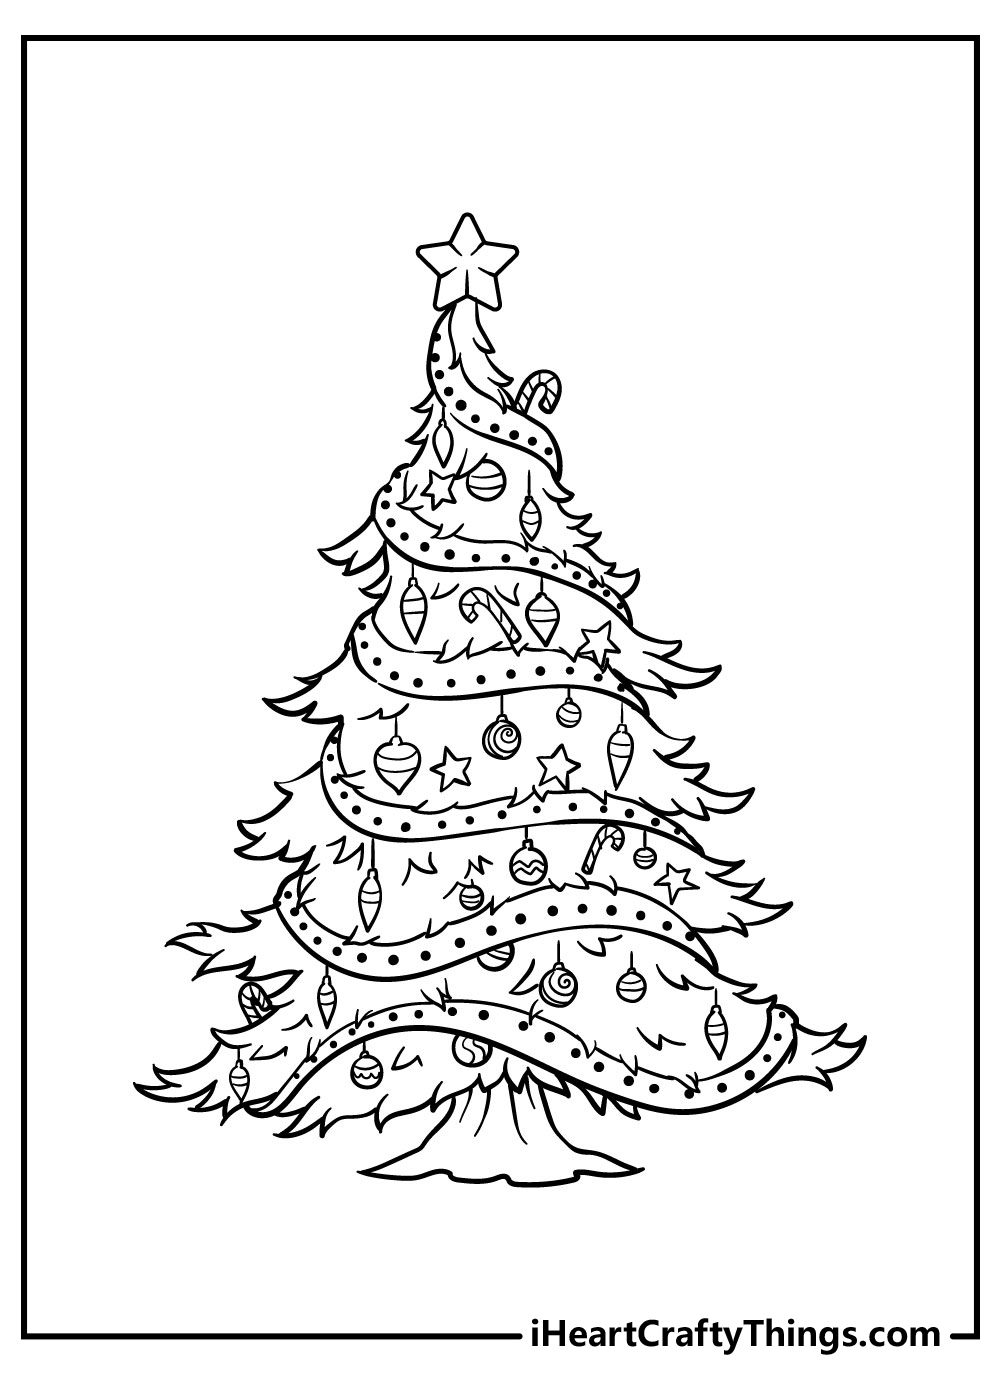 small christmas tree coloring pages free download